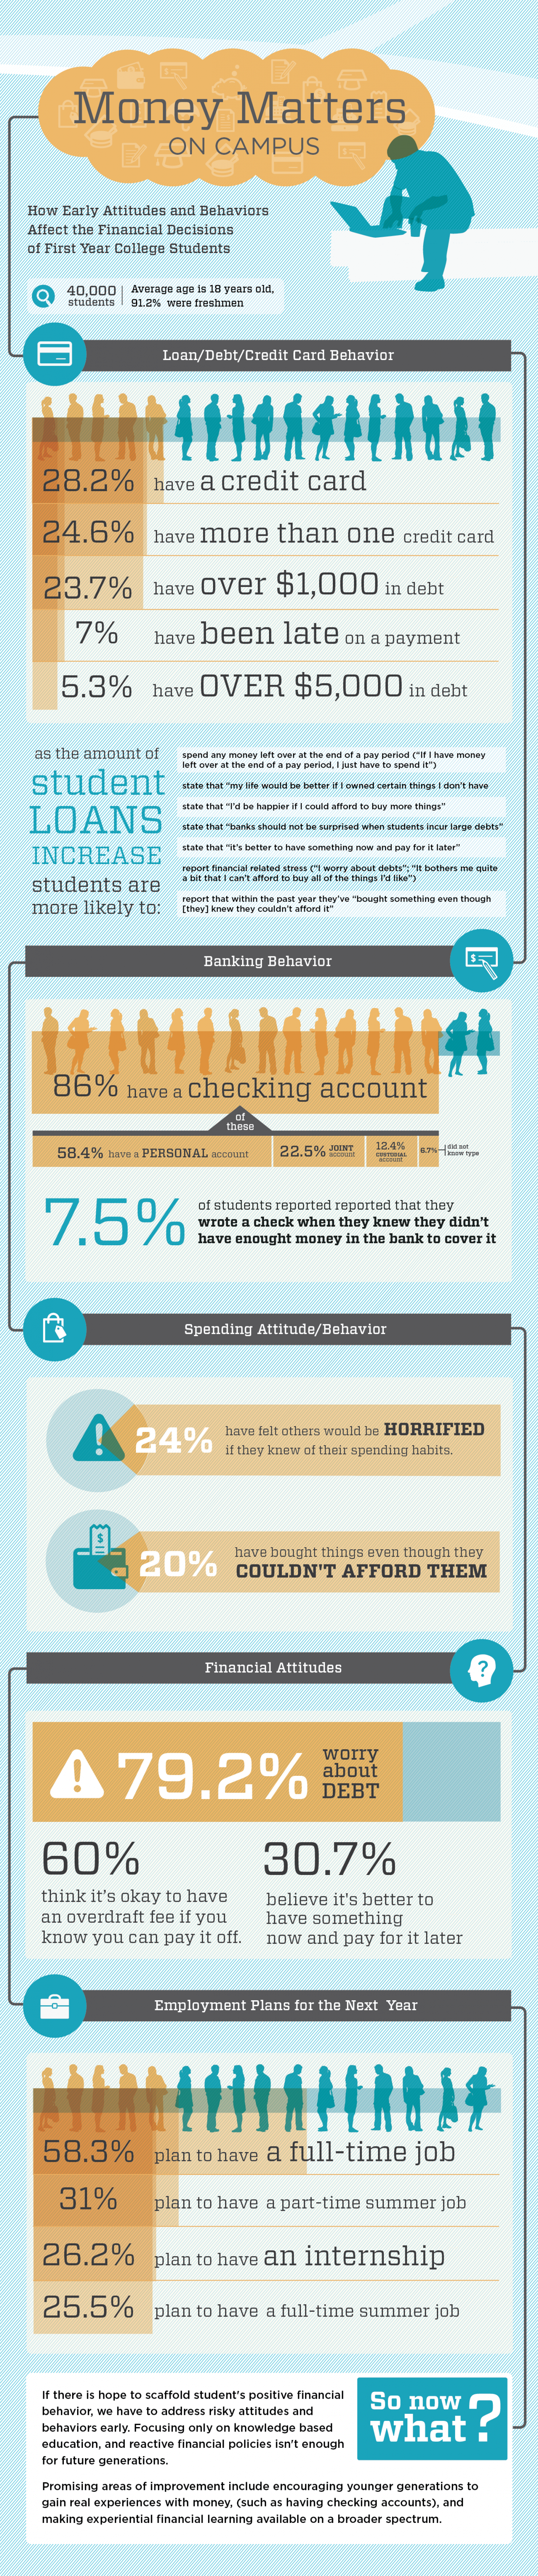 Money Matters on Campus Infographic